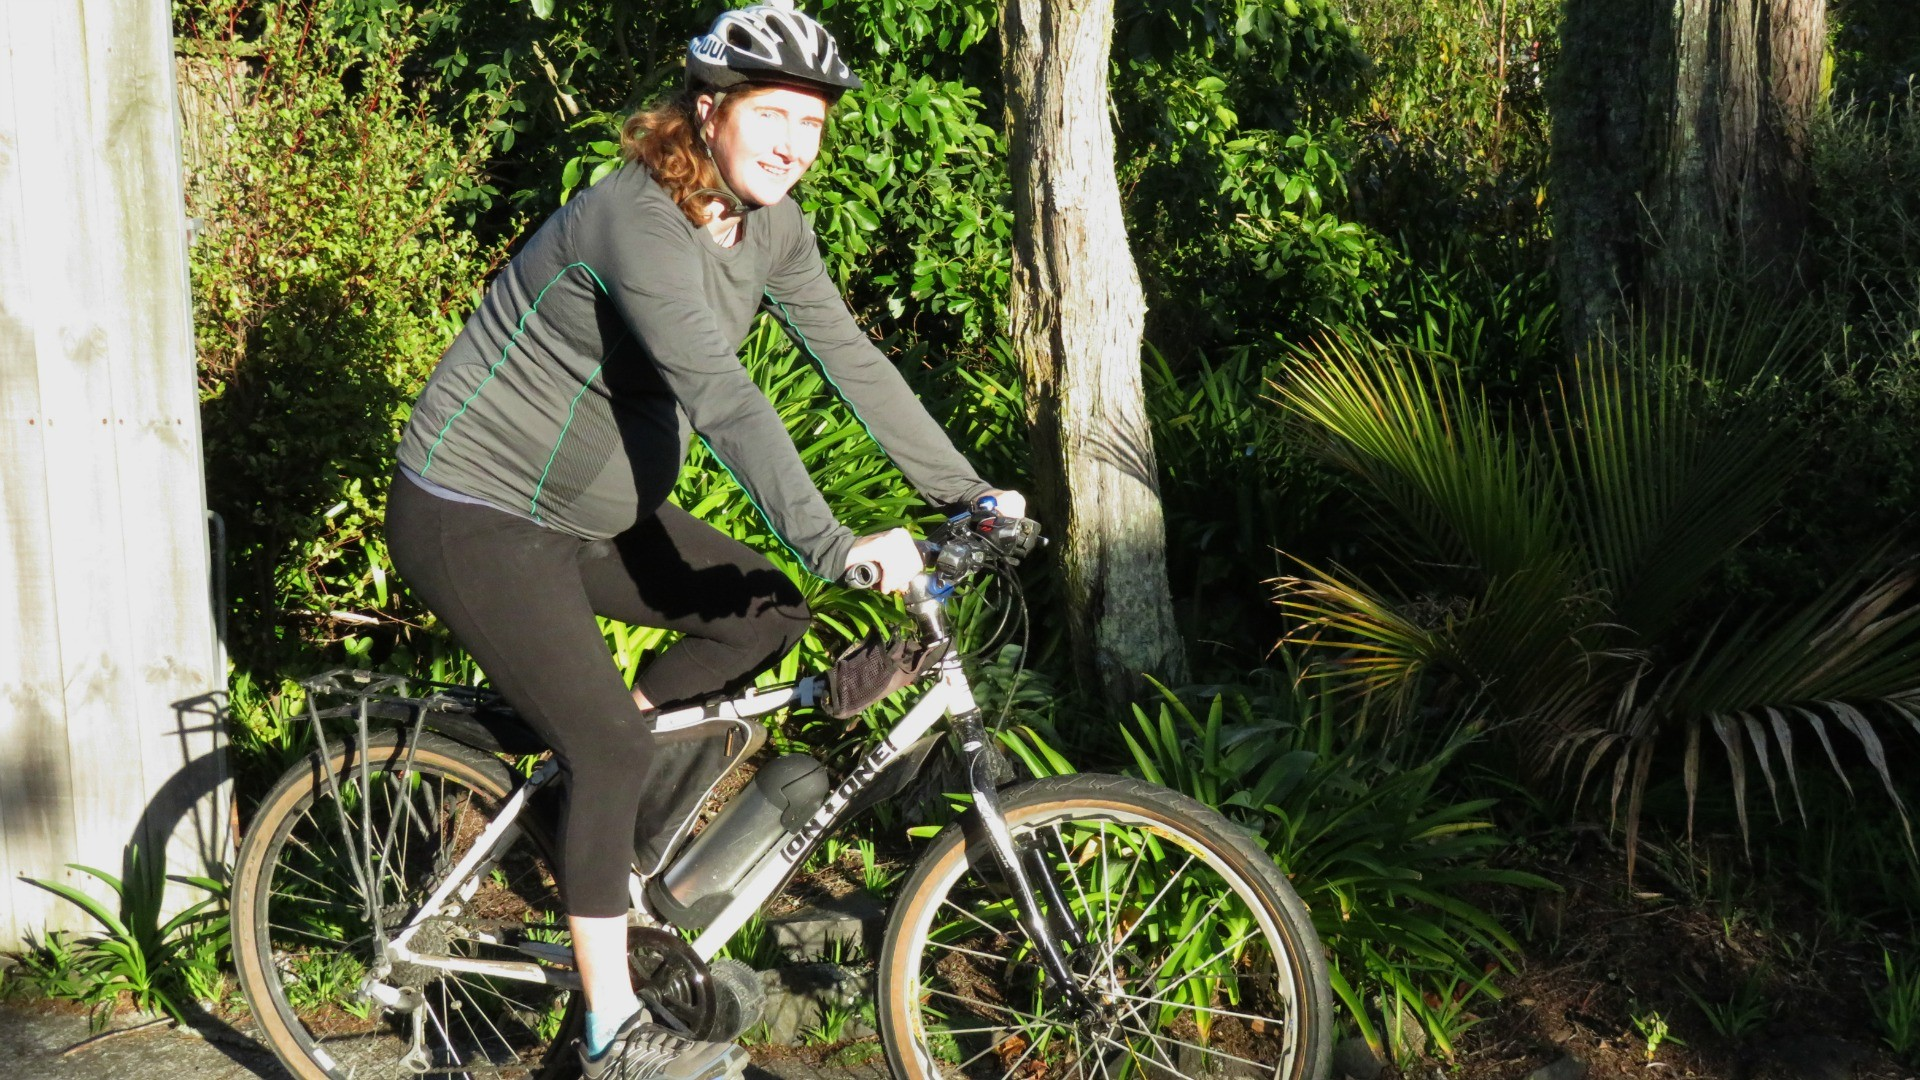 What it's like to cycle while pregnant - BikeRadar